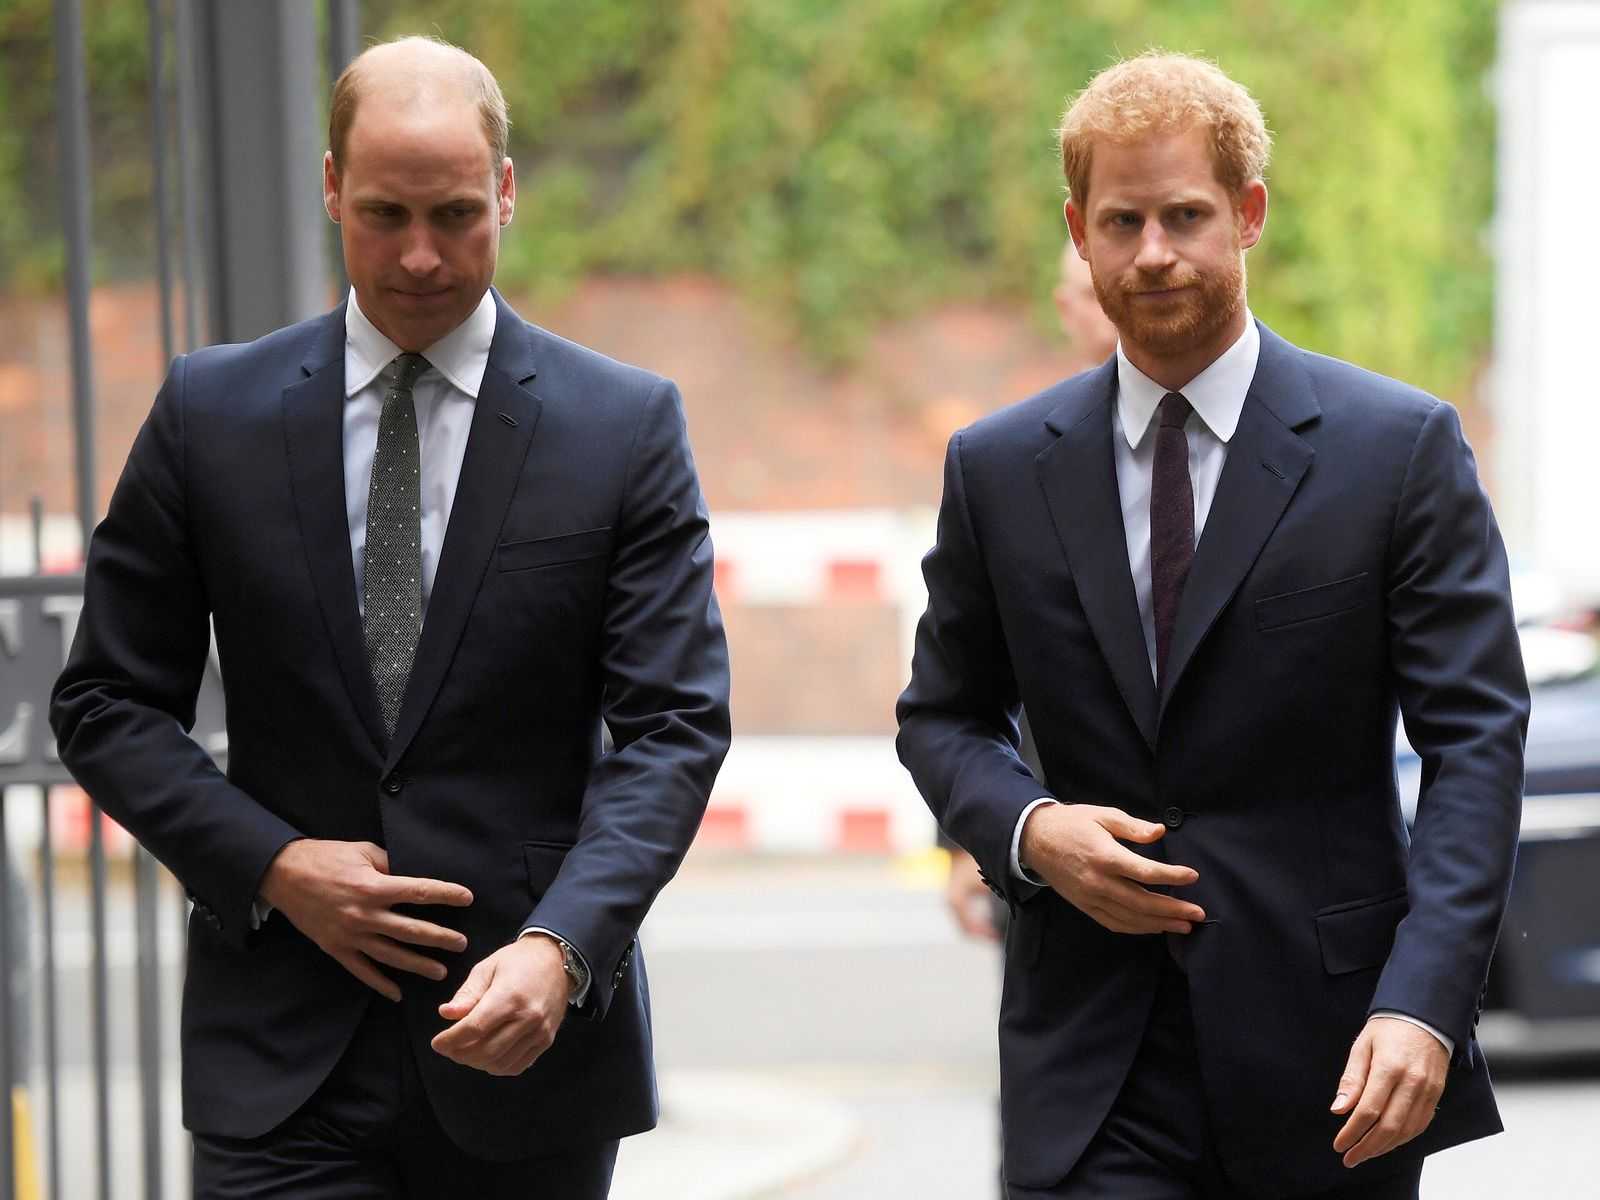 FILE  - In this Tuesday, Sept. 5, 2017 file photo, Britain's Prince William, the Duke of Cambridge, left, and Prince Harry arrive to visit the Support4Grenfell Community Hub in London. Britain's Queen Elizabeth II is set to hold face-to-face talks Monday, Jan. 13, 2020 with Prince Harry for the first time since he and his wife, Meghan, unveiled their controversial plan to walk away from royal roles — at a dramatic family summit meant to chart a future course for the couple. The meeting at the monarch's private Sandringham estate in eastern England will also include Harry's father Prince Charles and his brother Prince William. (Toby Melville/ Pool via AP, File)